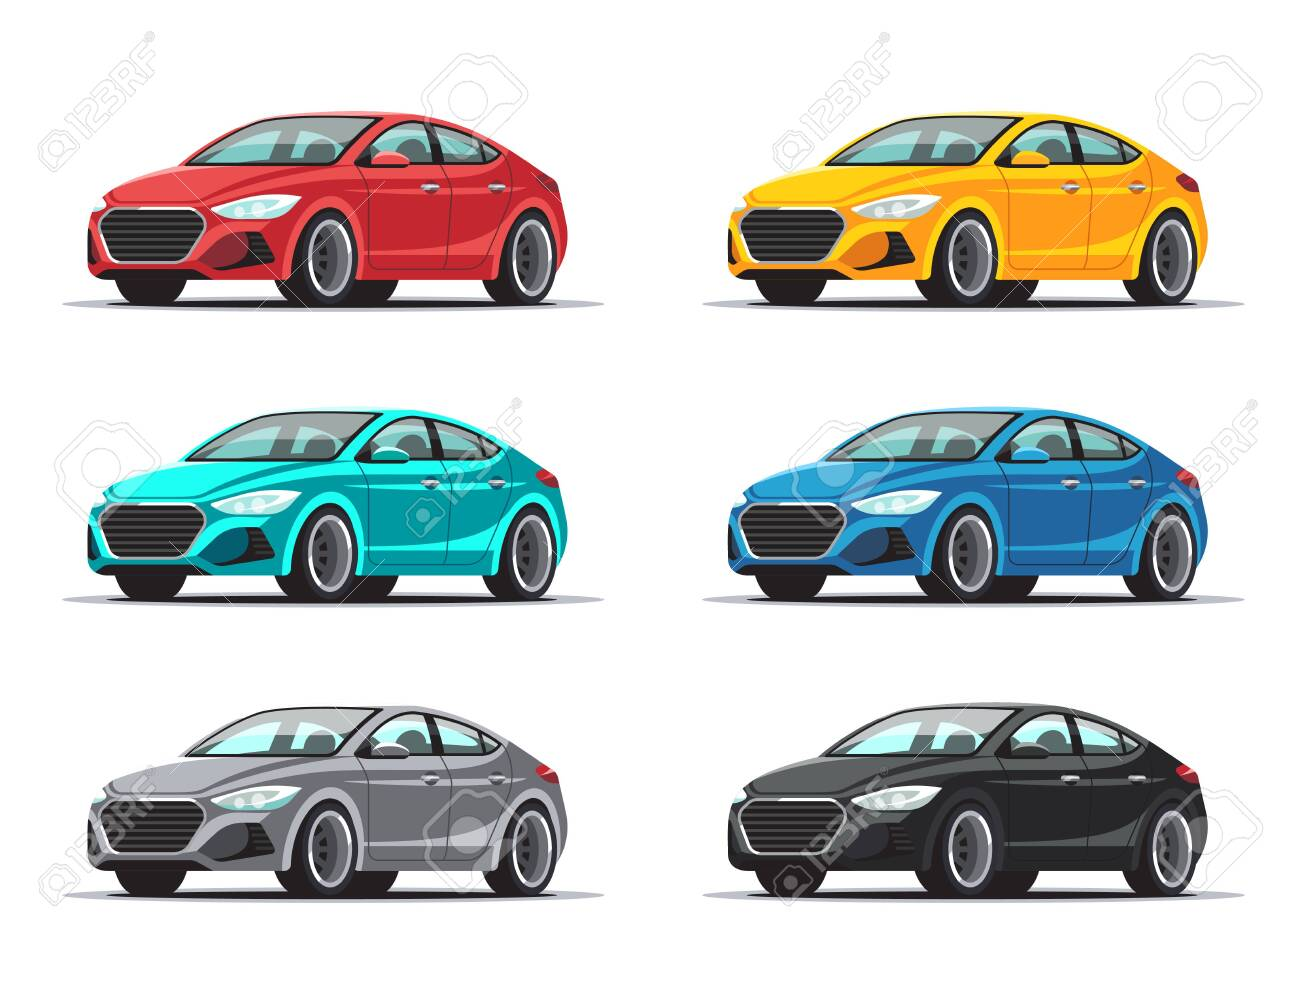 Set of cars. Collection sedan vehicles in a variety of colors. Vector illustration isolated on white background. - 141008525